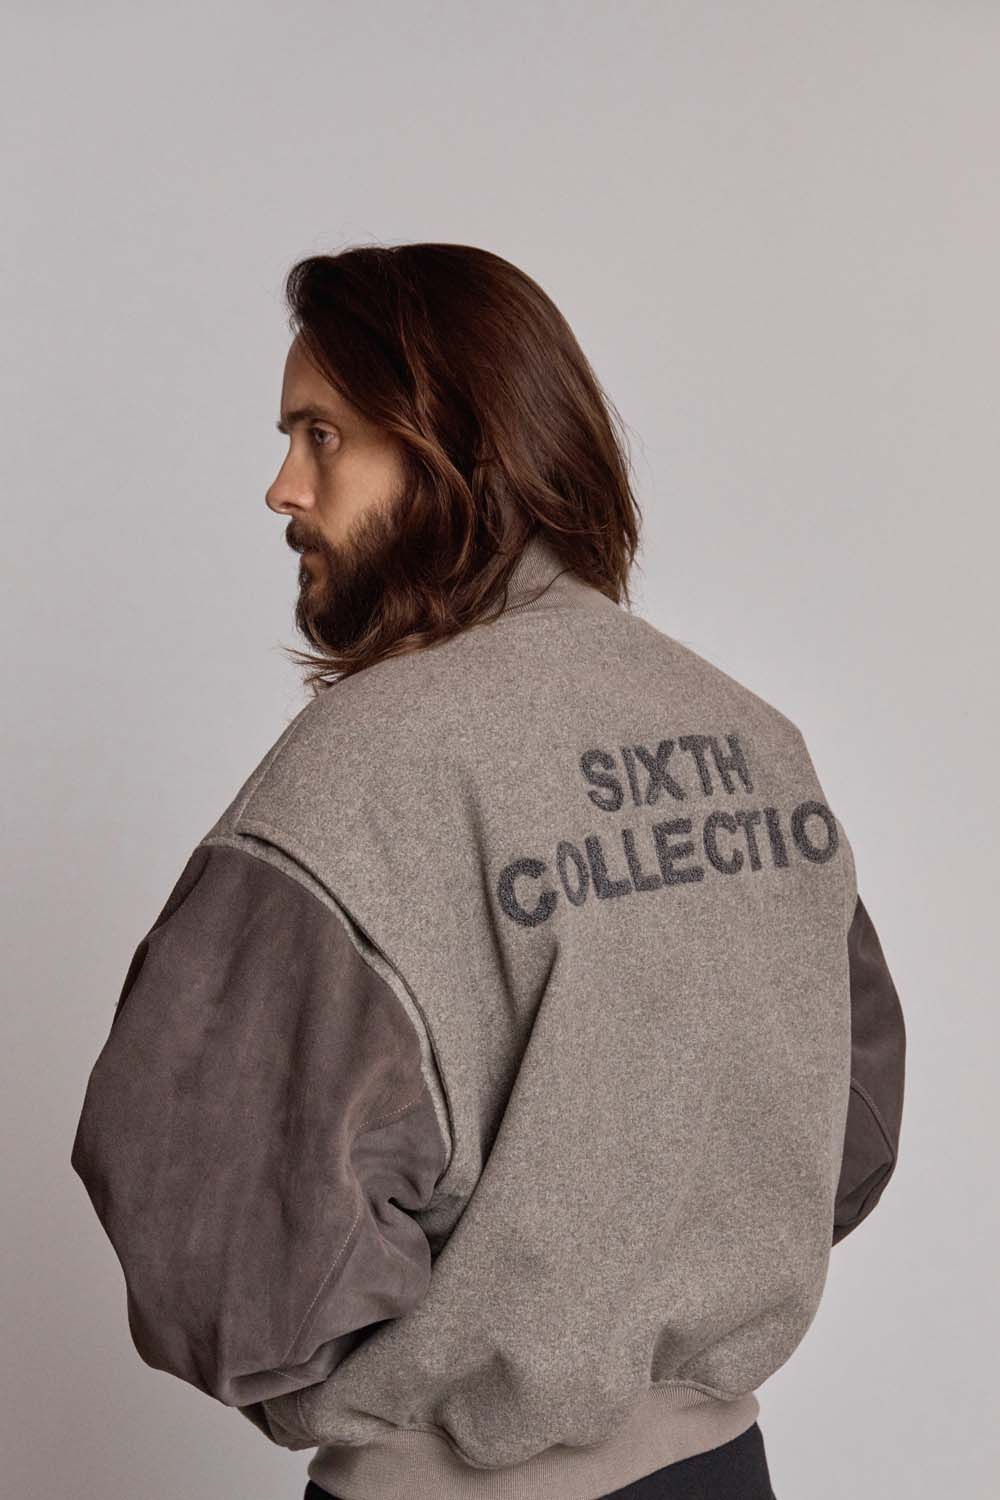 https_%2F%2Fhypebeast.com%2Fimage%2F2018%2F09%2Ffear-of-god-6-sixth-collection-jared-leto-nike-62.jpg